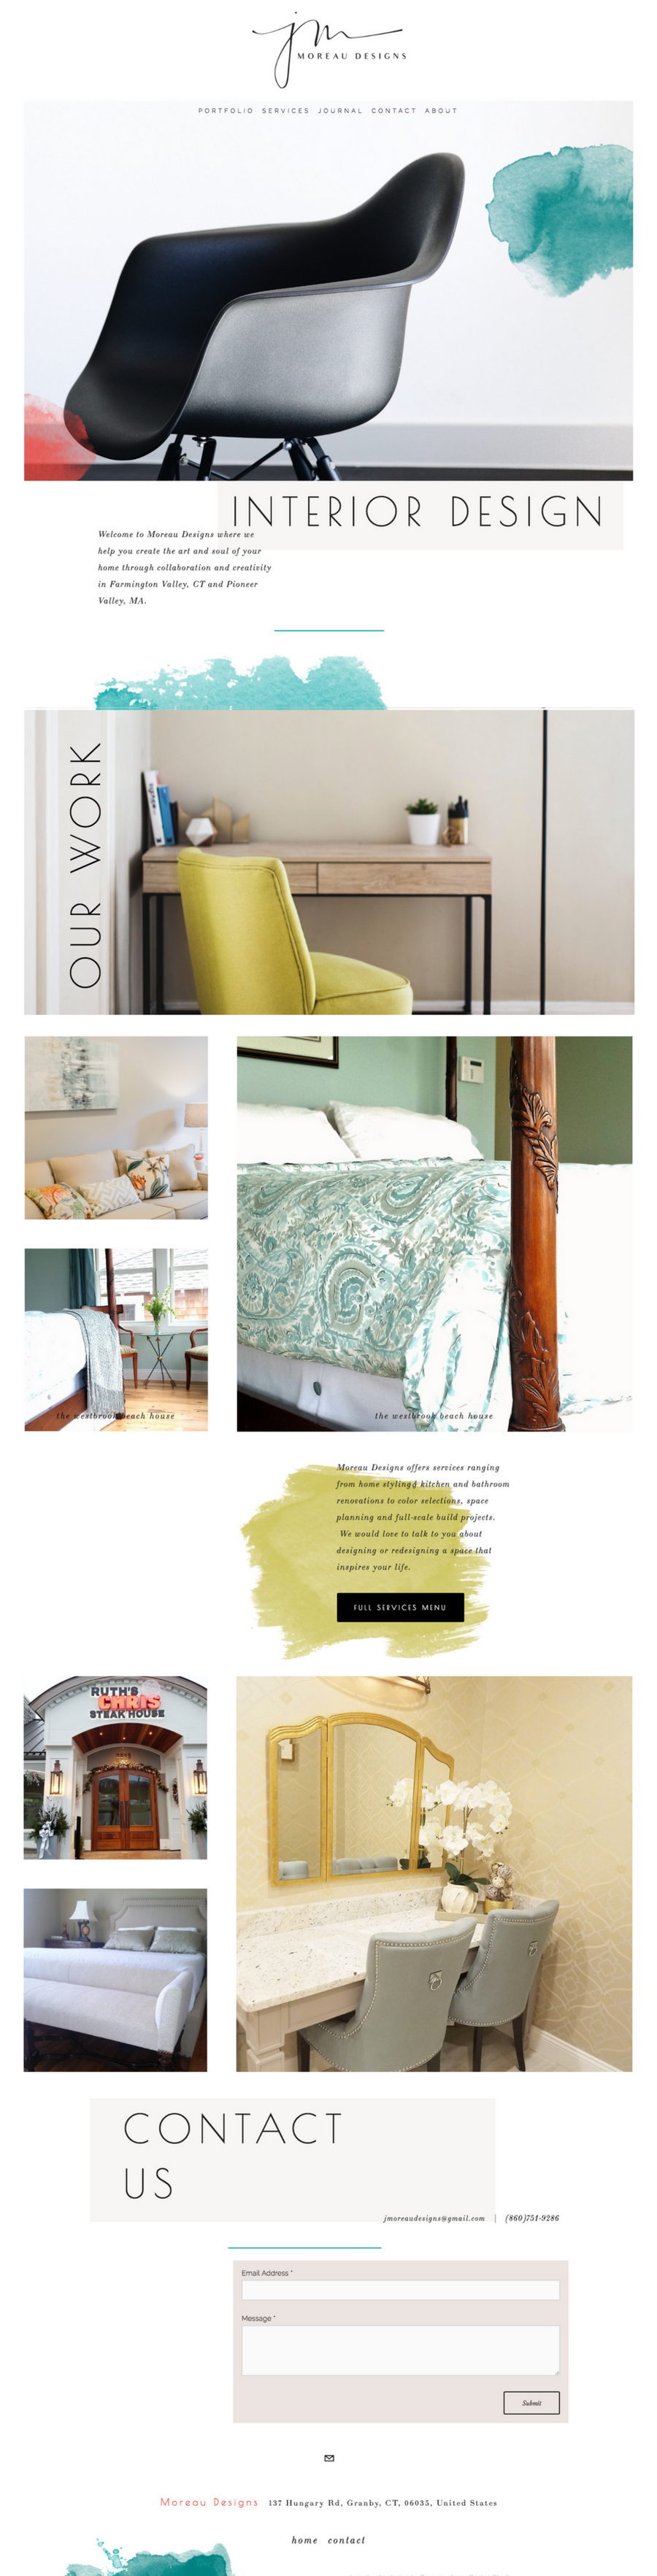 a custom squarespace design show off her aesthetic and branding-  view the site live